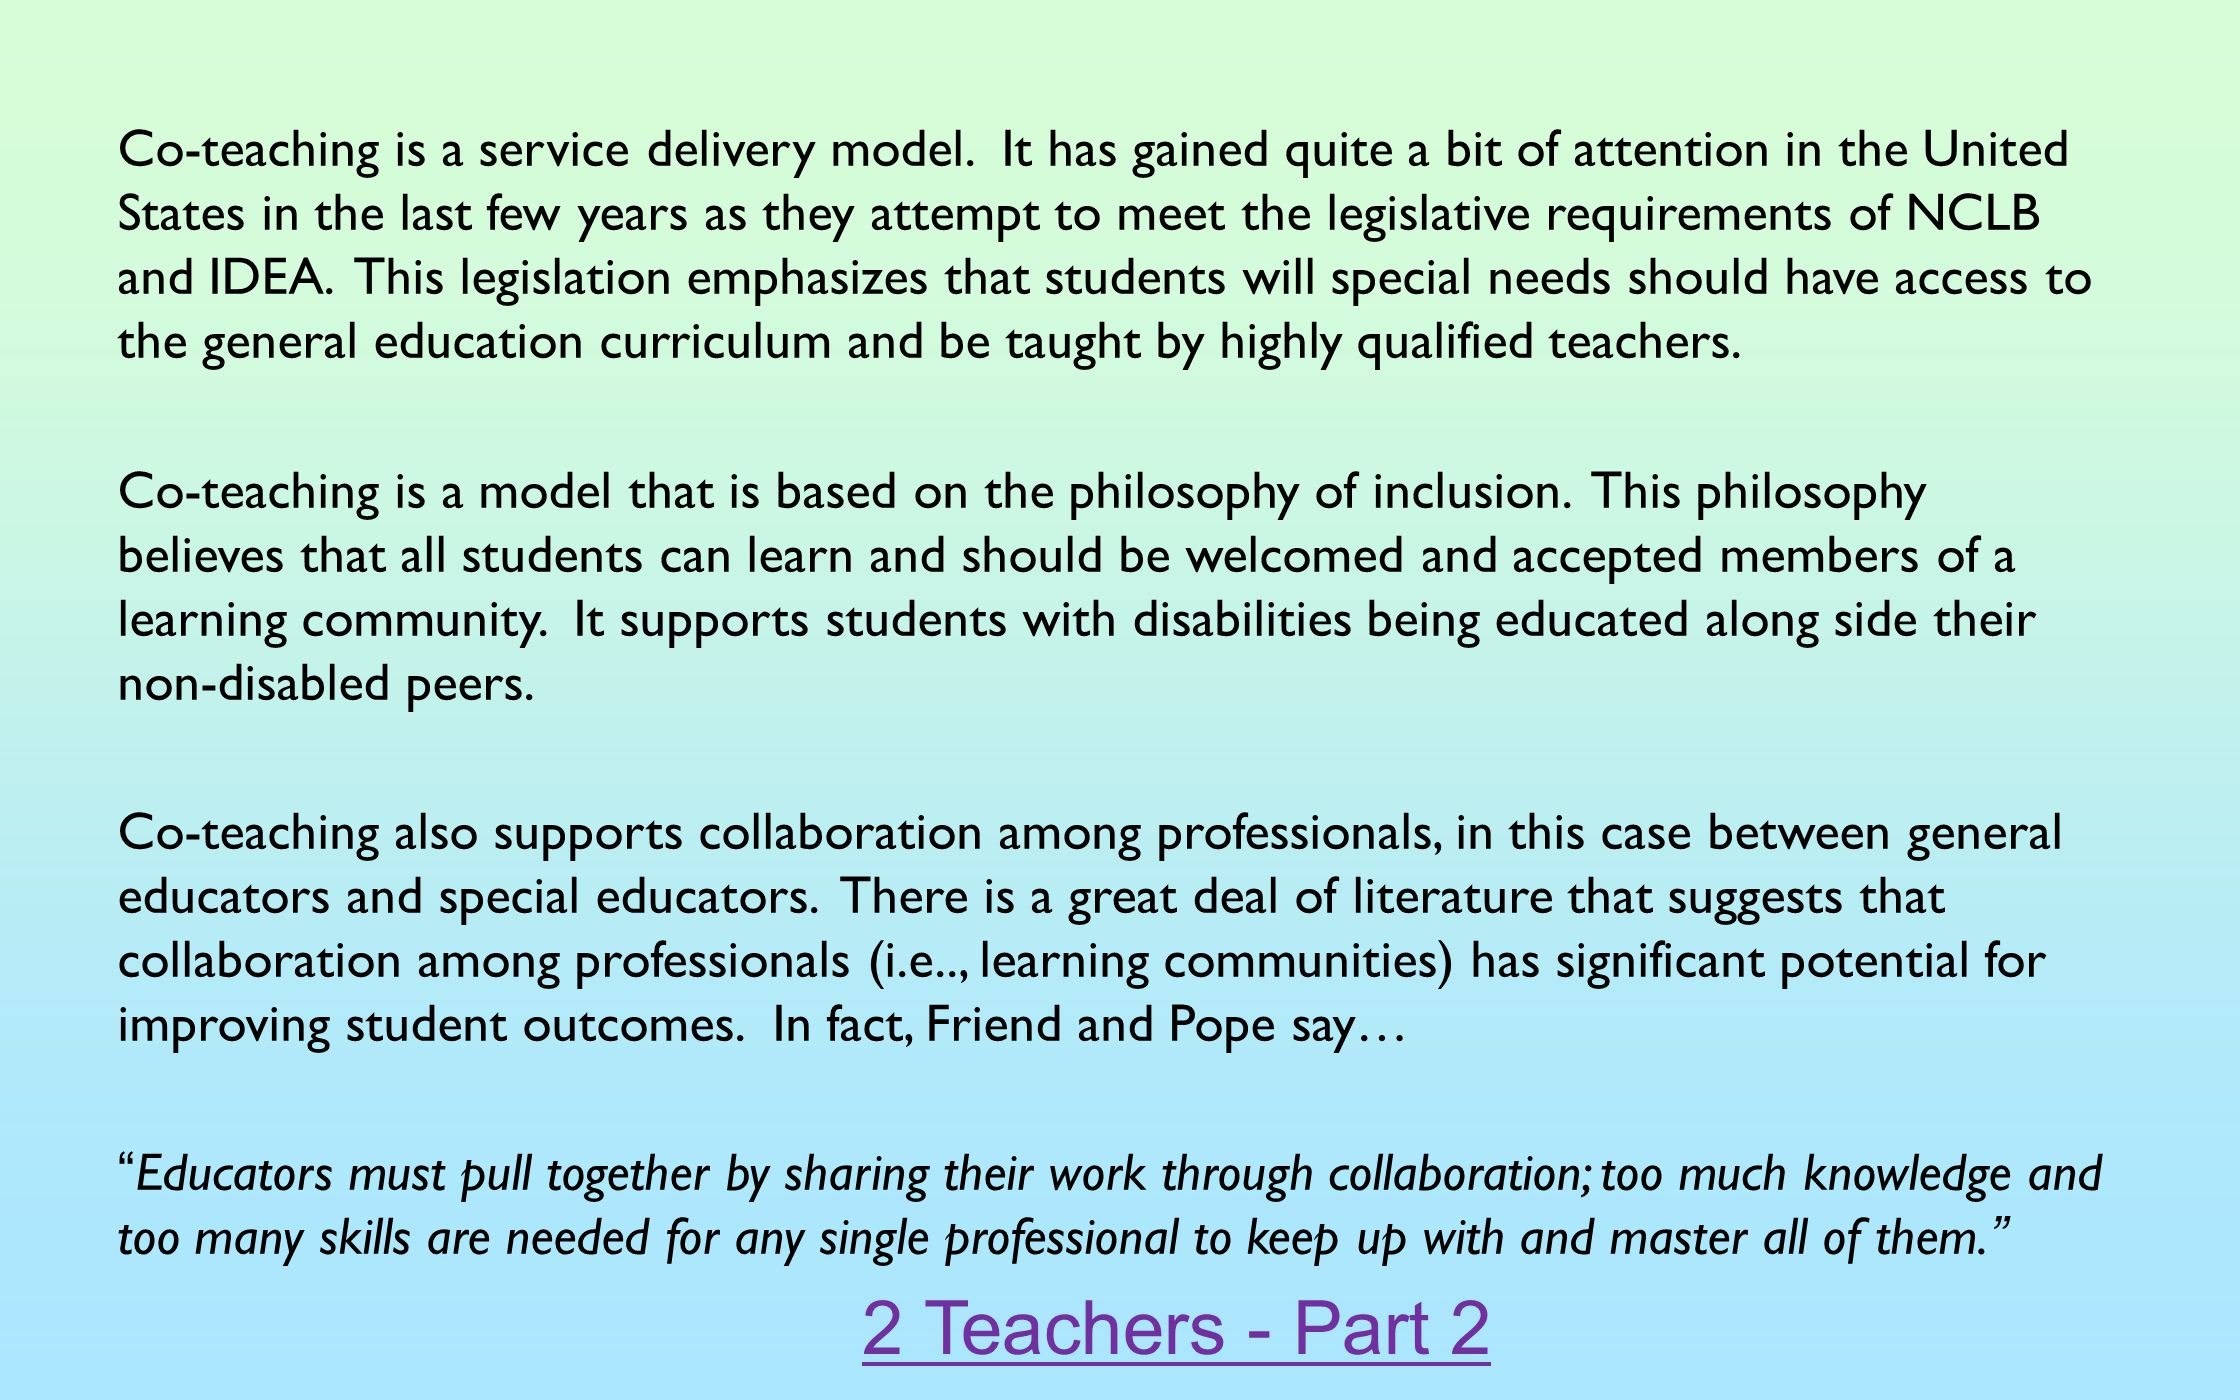 Co-teaching is a service delivery model